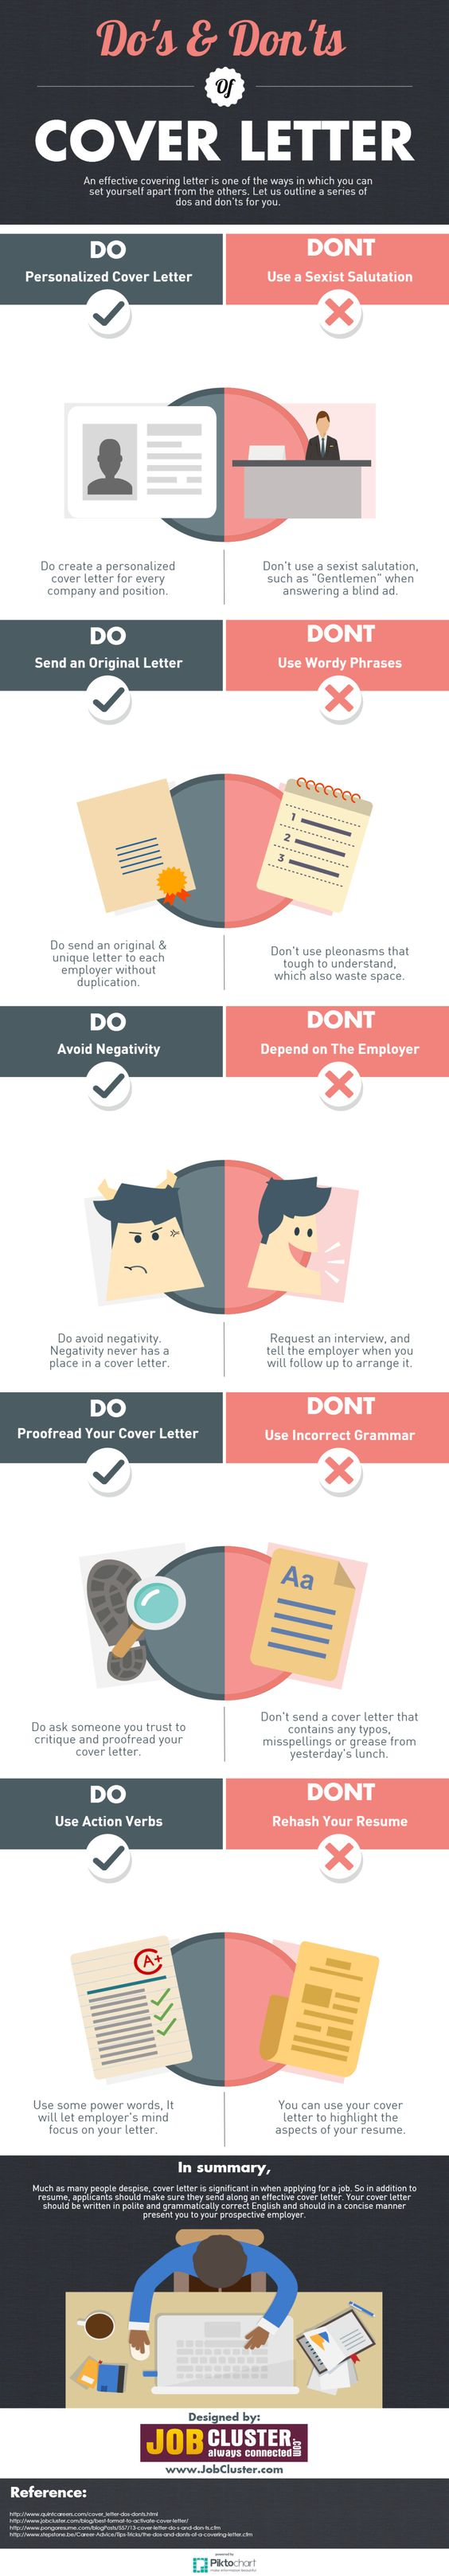 Cover letters infographic and career on pinterest for Do recruiters read cover letters